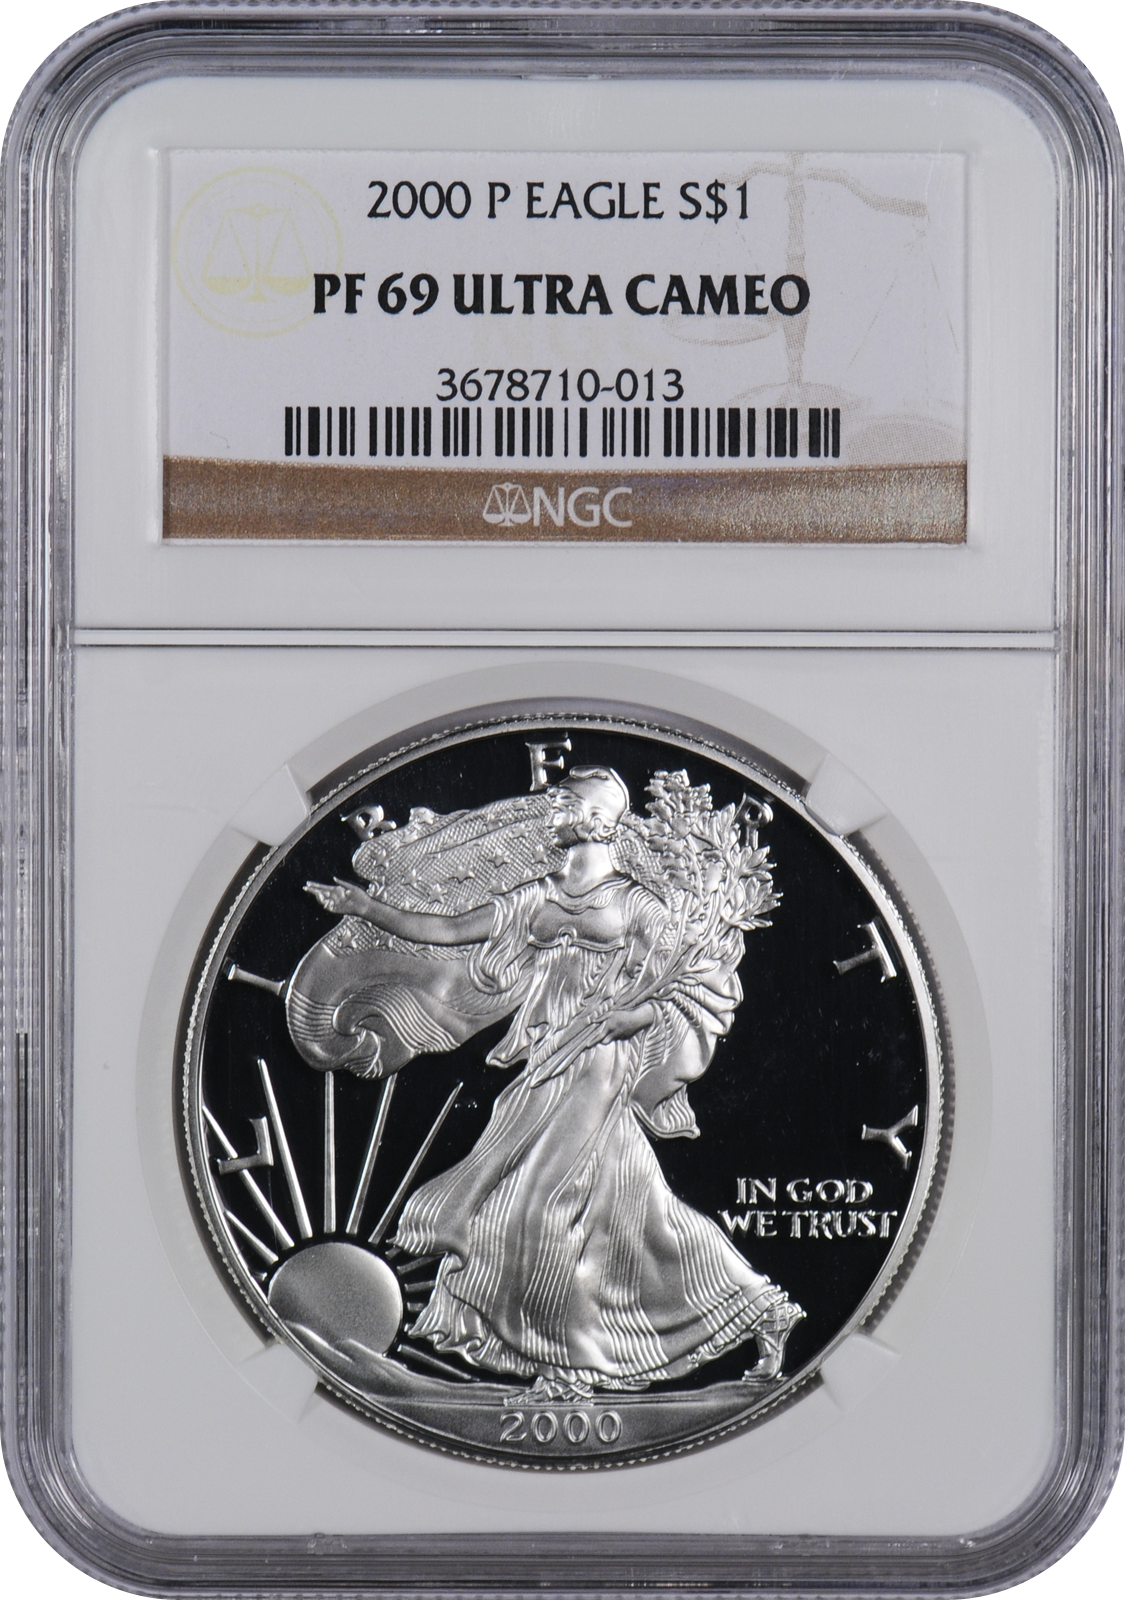 This 2000 P Silver Eagle Pf69 Uc Is A Popular Coin For Investors And Collectors Alike This Coin Has A Silver Eagle Coins Silver Eagles American Silver Eagle